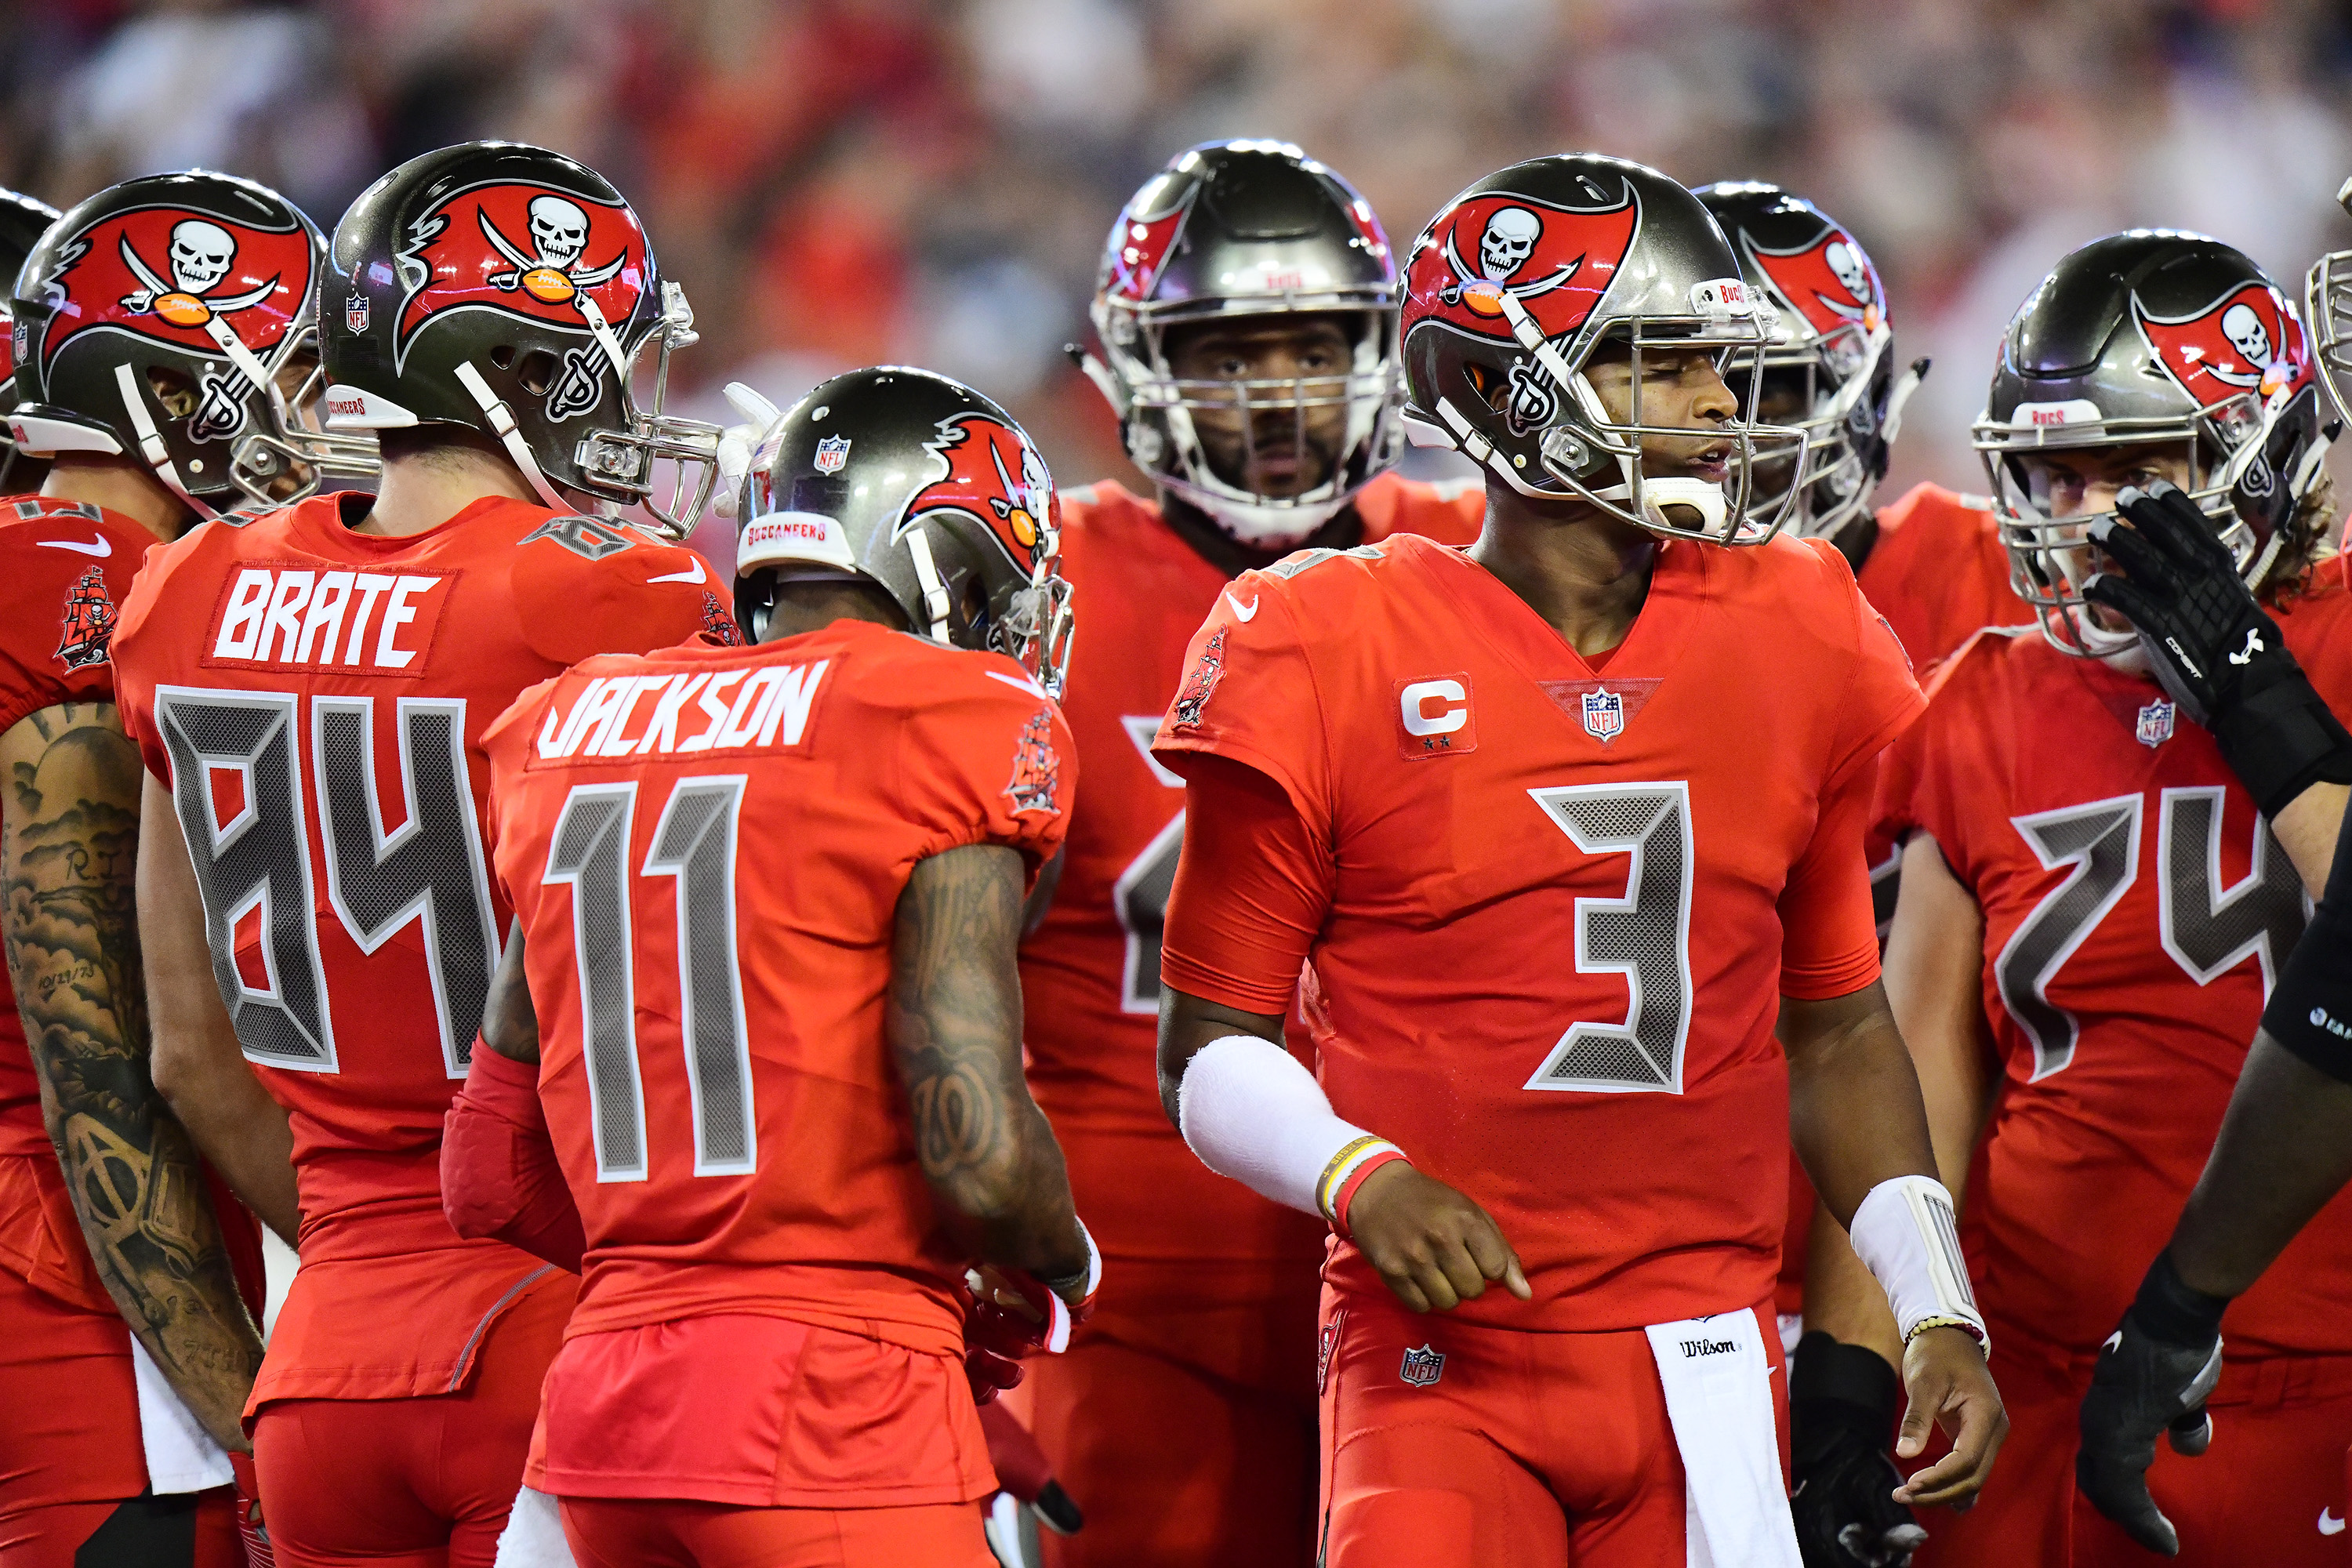 tampa bay buccaneers ranking the bucs uniform among the nfl 32 https thepewterplank com 2018 04 10 tampa bay buccaneers ranking bucs uniform among nfl 2018